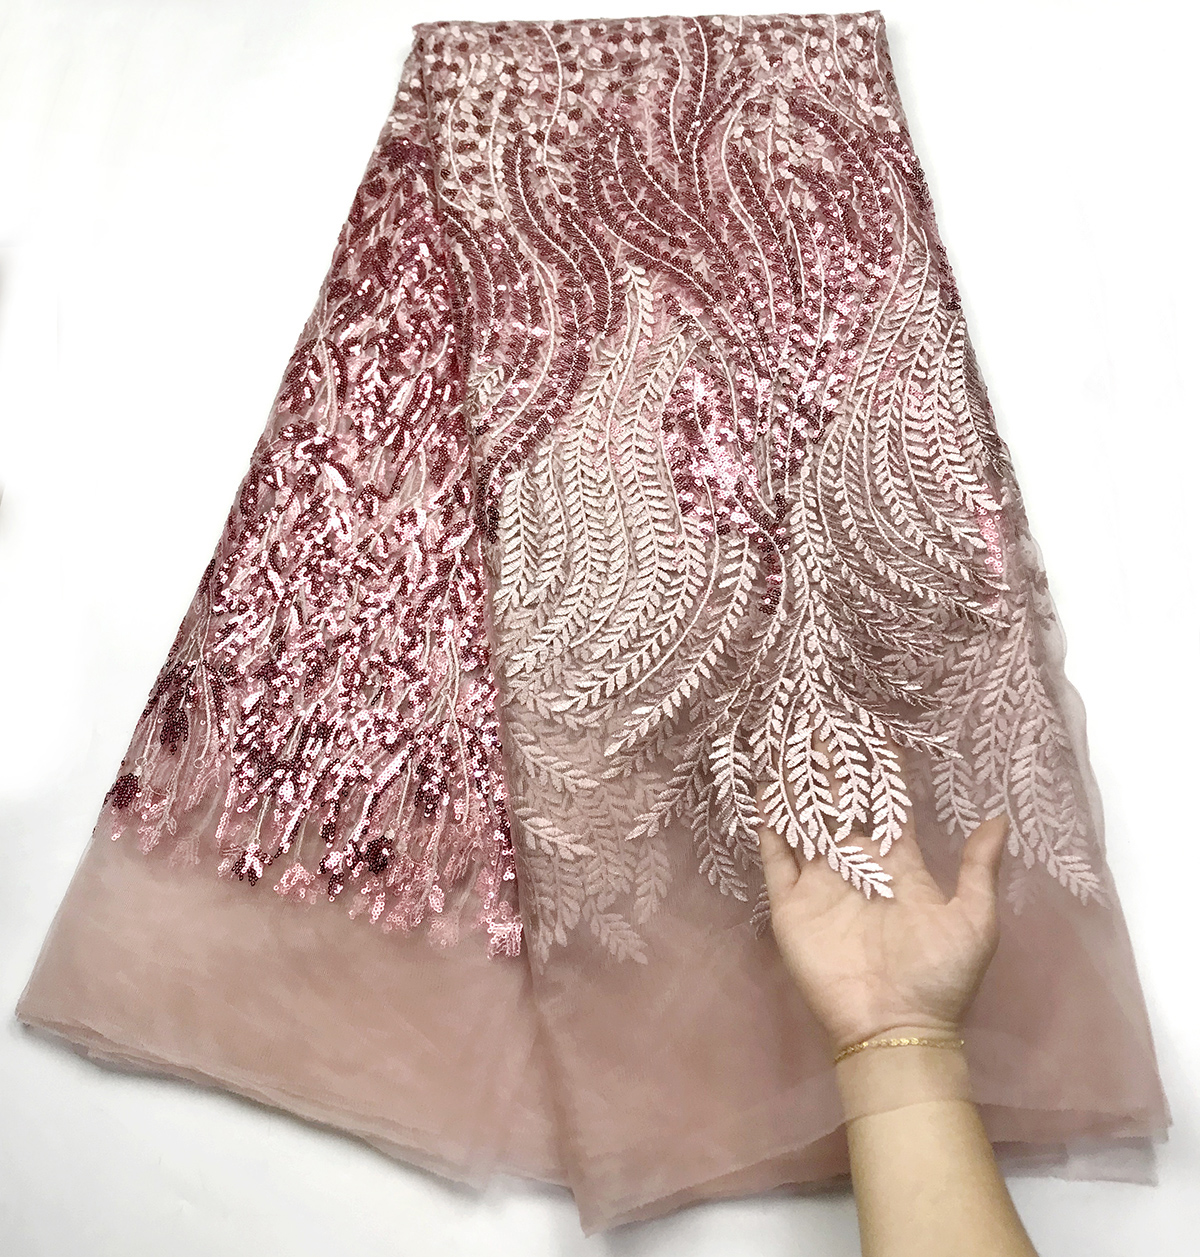 Newest Embroidery nigeria Lace fabric 2020 high quality lace New style French tulle lace fabric African sequins lace fabric